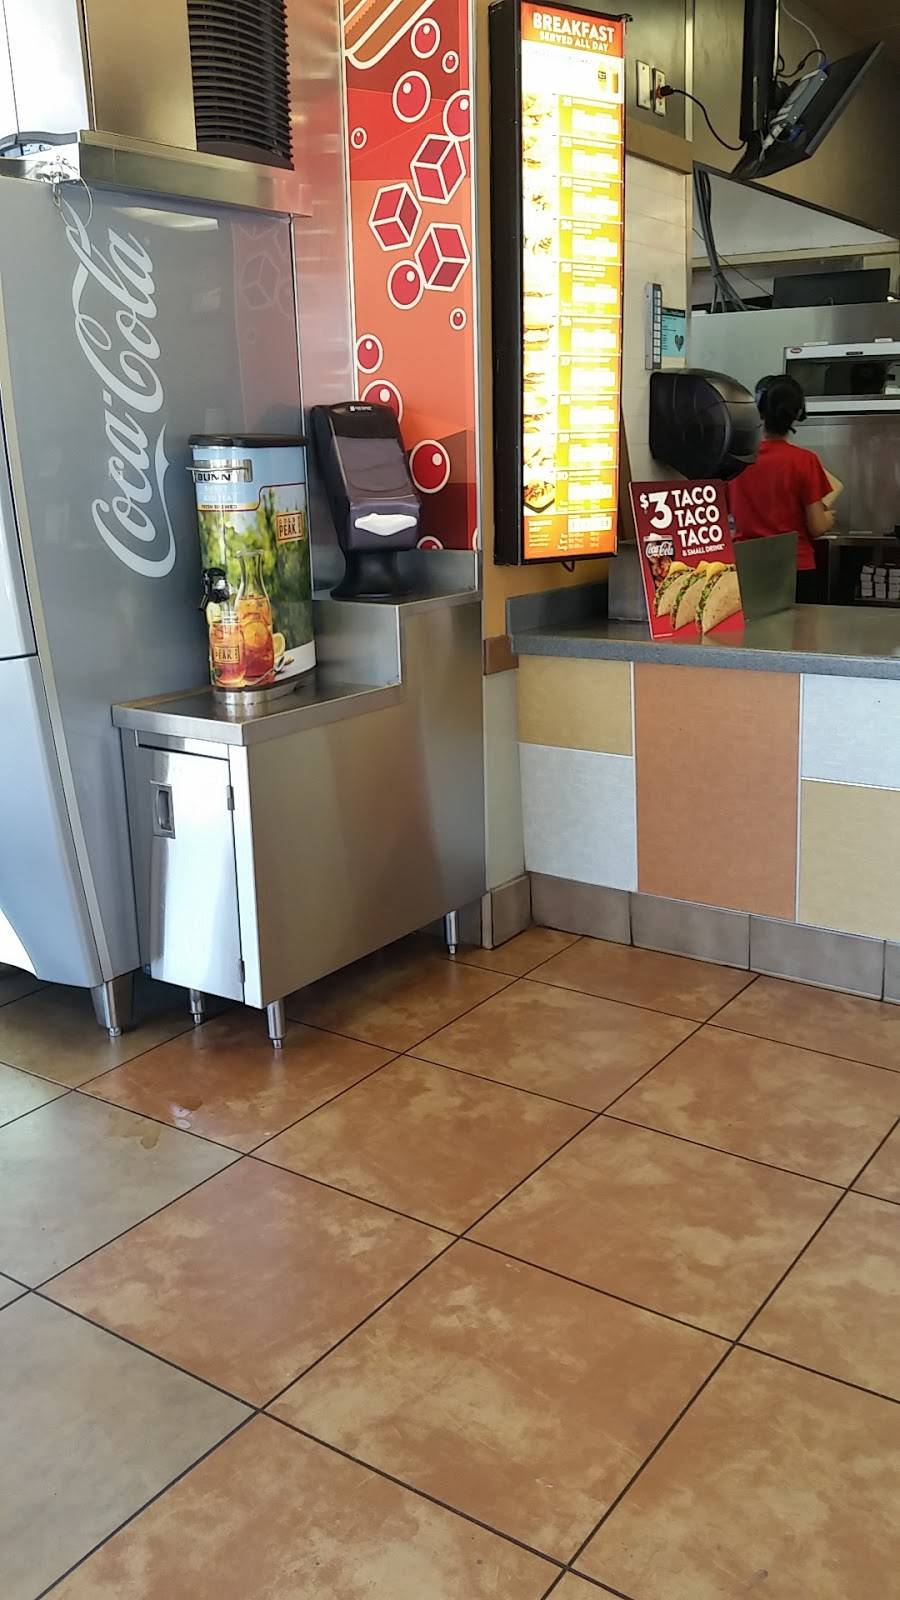 Jack in the Box - Restaurant | 6501 Grapevine Hwy, North